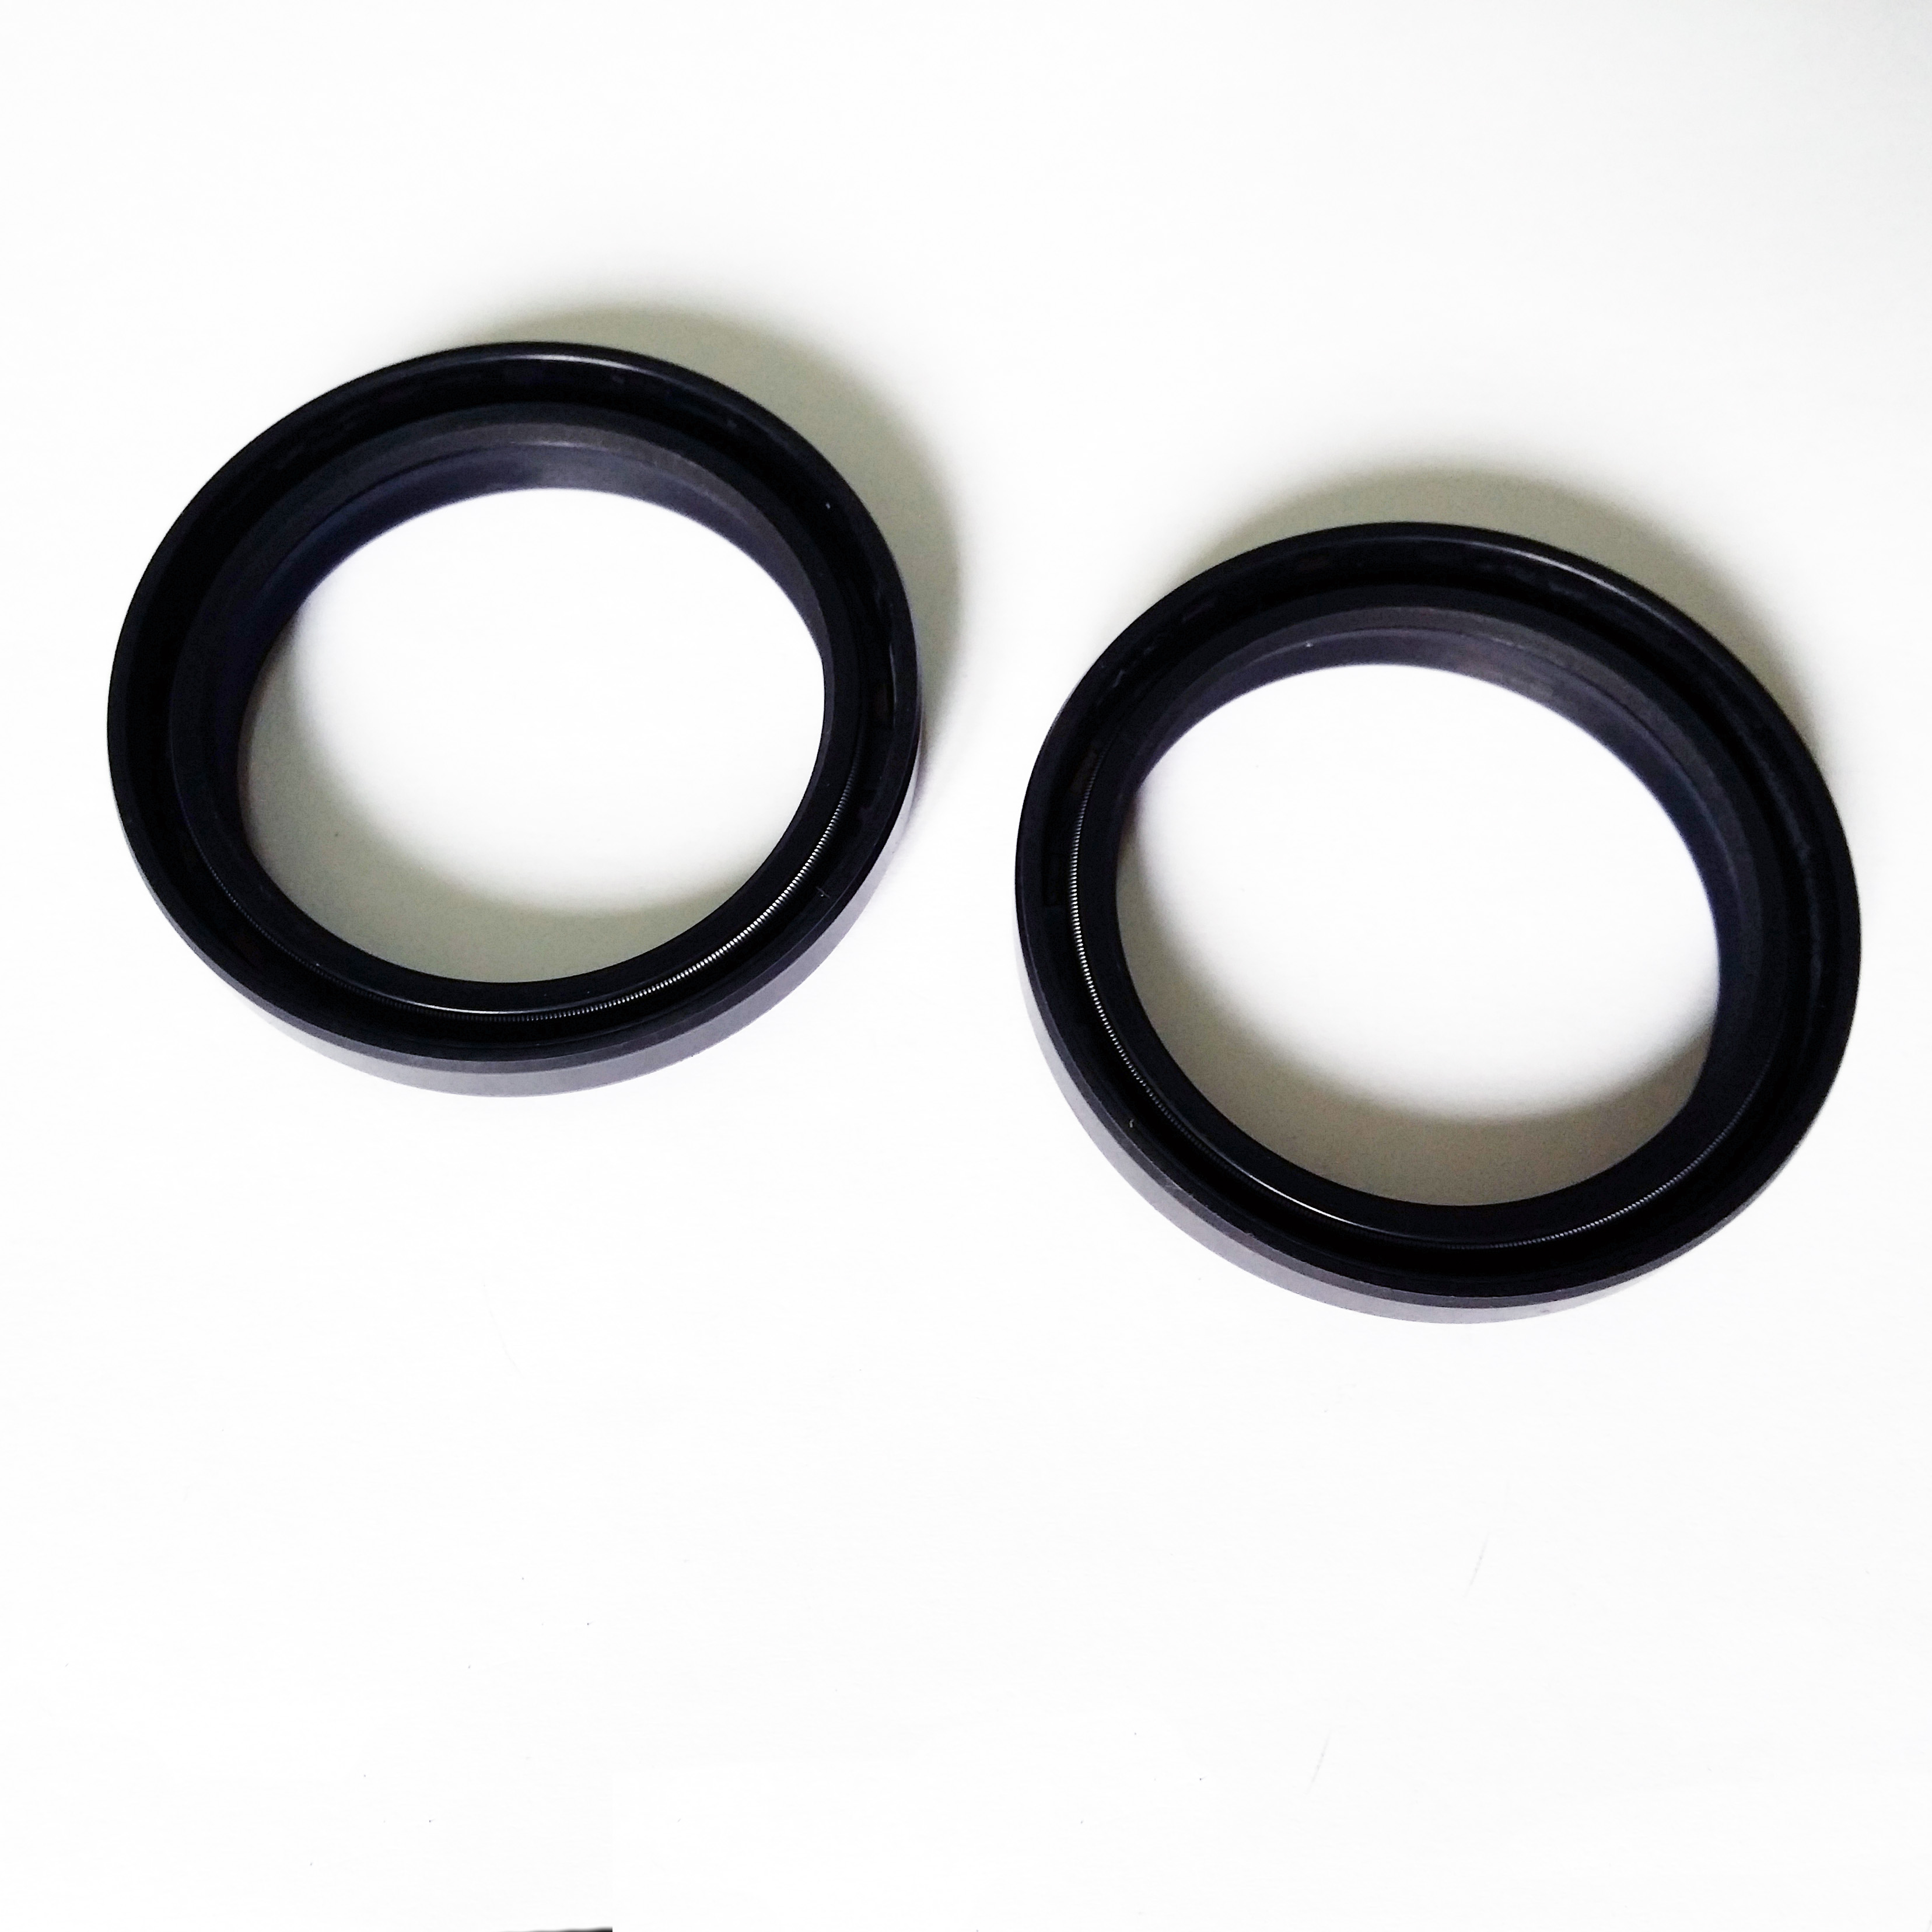 K-Tech TM EN450F   2007-2016 NOK Front Fork Oil Seals 50x63x11mm